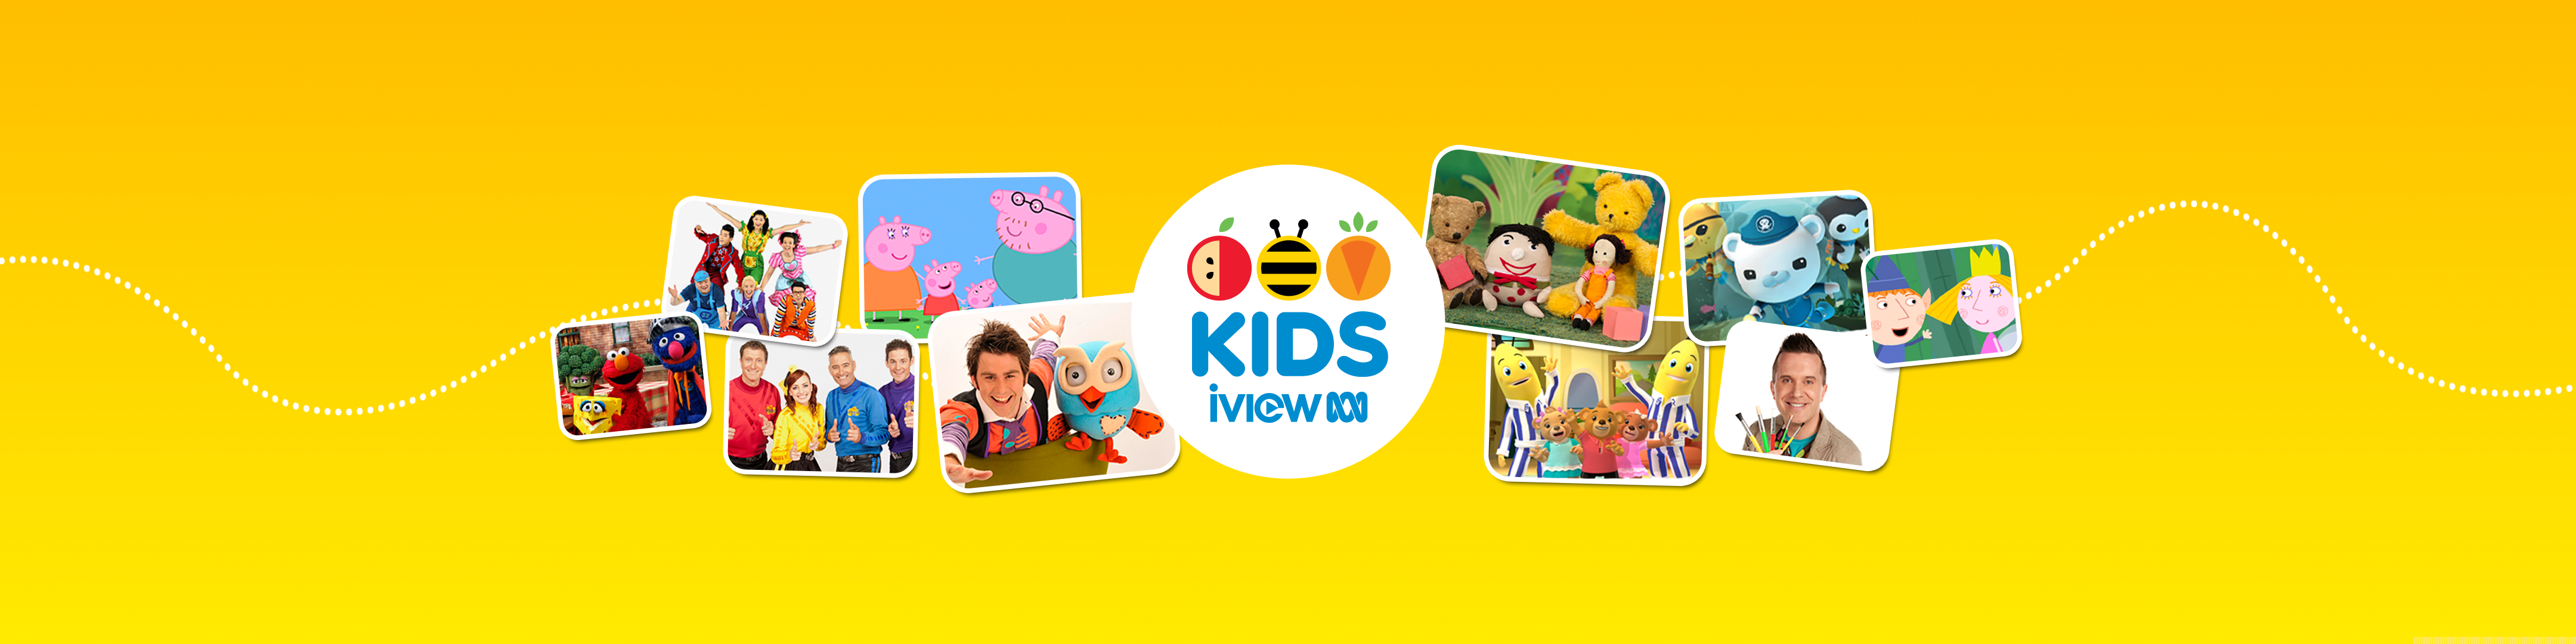 Local Stat Abc Kids Iview | Abcforkids